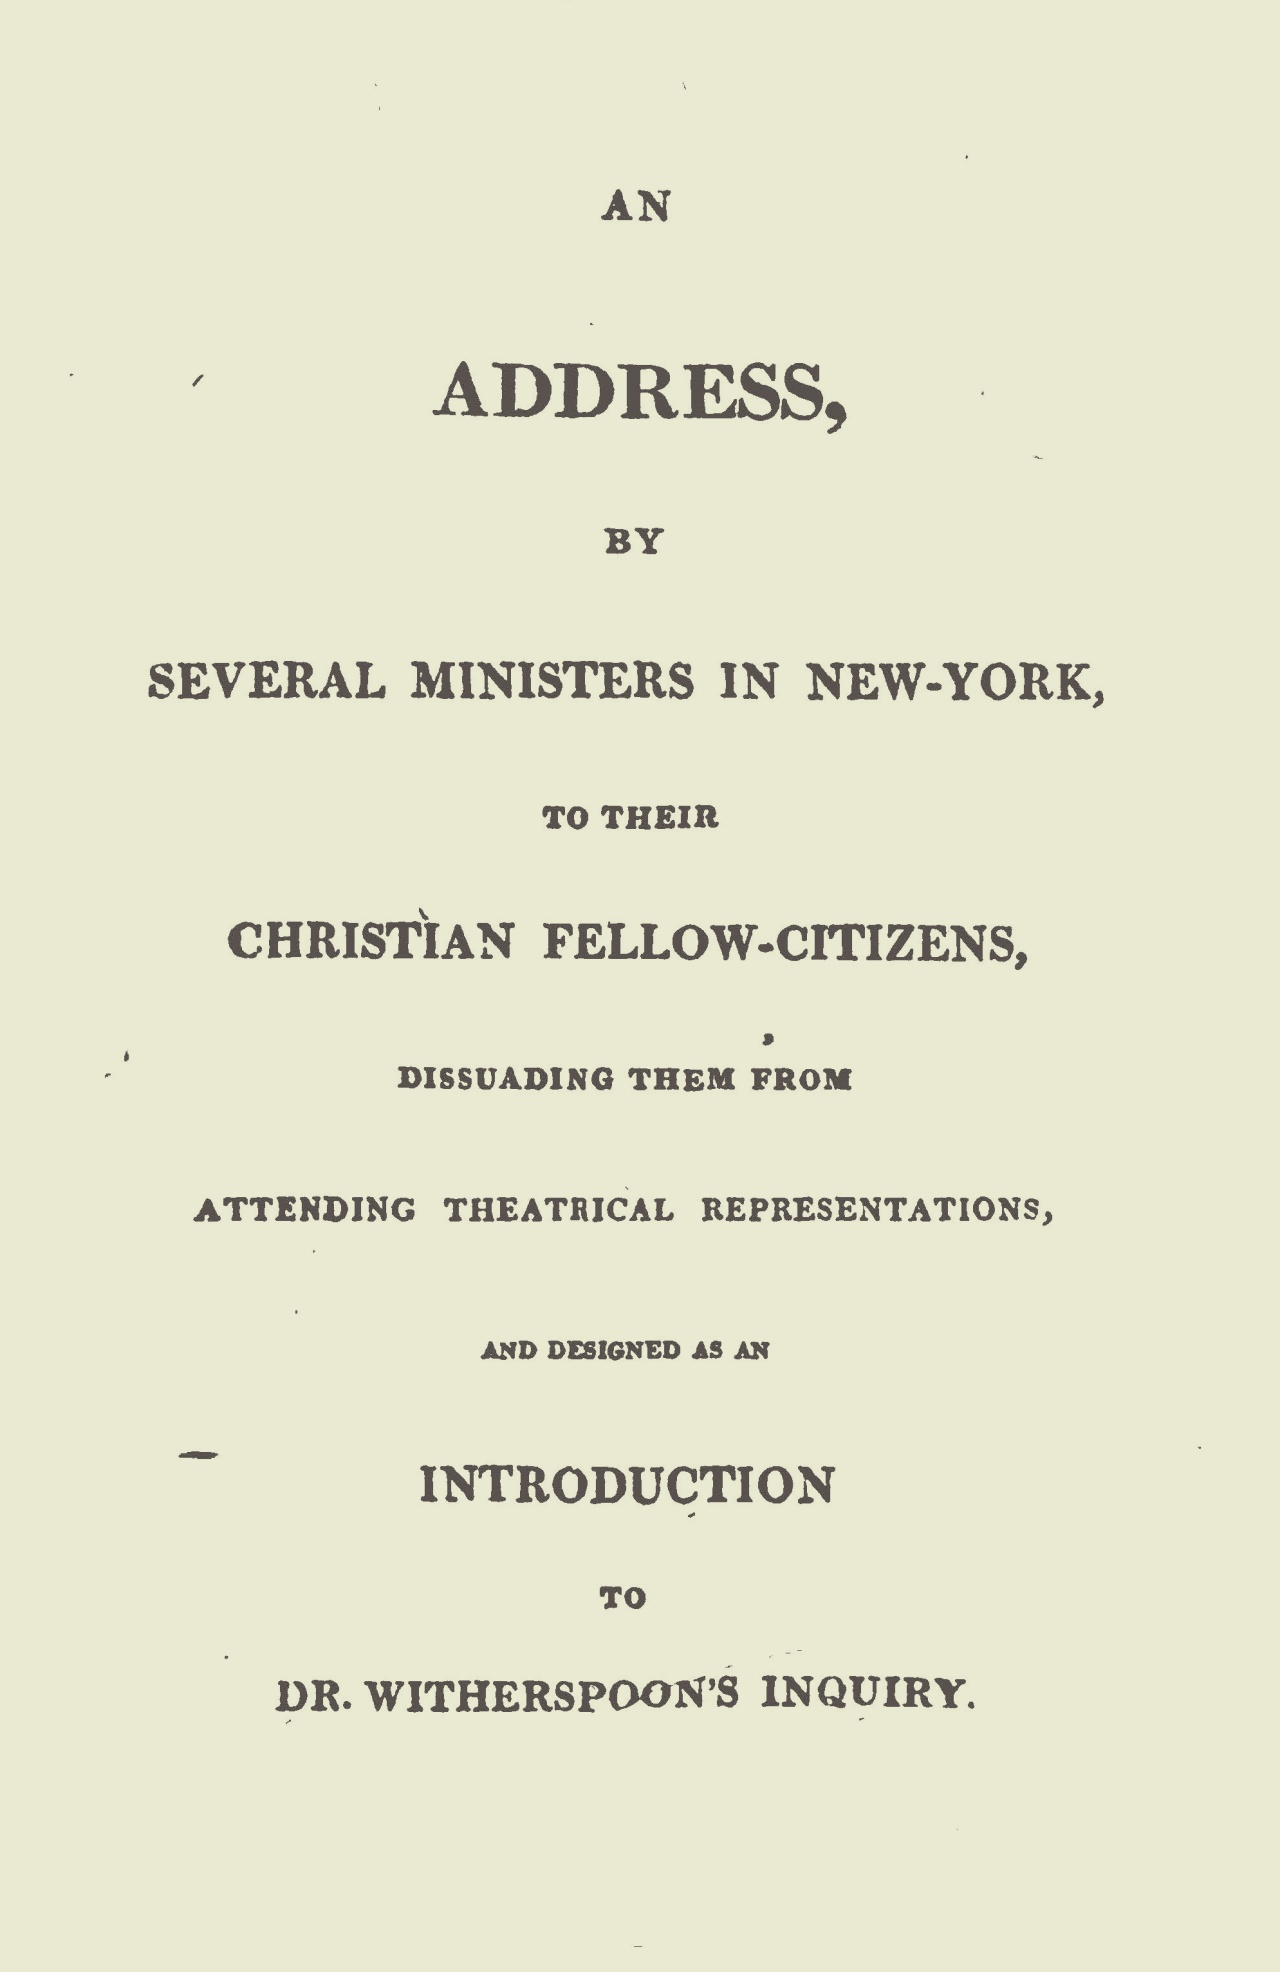 Milledoler, Philip, An Address on Theatrical Representations Title Page.jpg